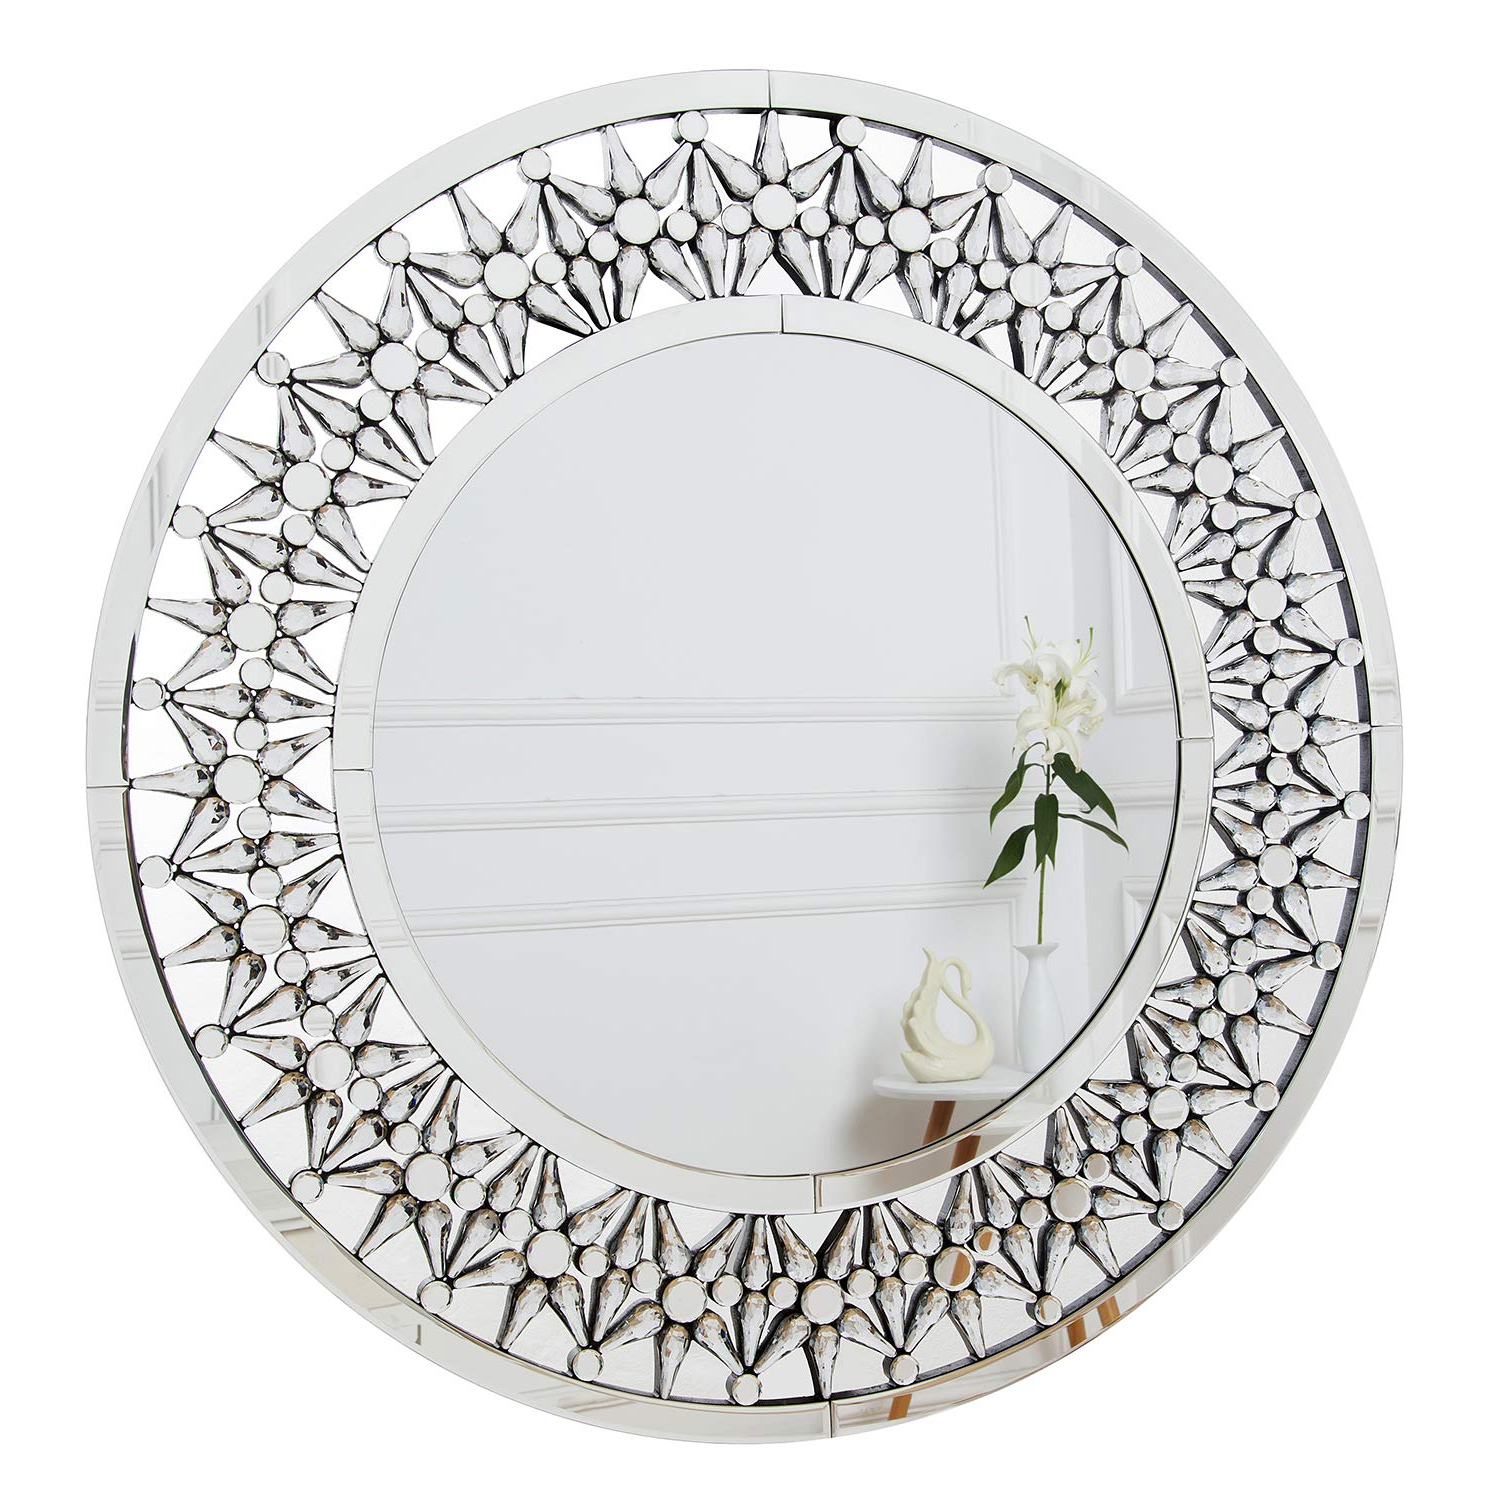 Large Circular Wall Mirrors Throughout Best And Newest Richtop Wall Mirror Large Starburst Crystal Mosaic Frame Round Wall Mounted Mirrors For Living Room, Bedroom, Hallway, Kitchen 90Cm X 90Cm (View 4 of 20)